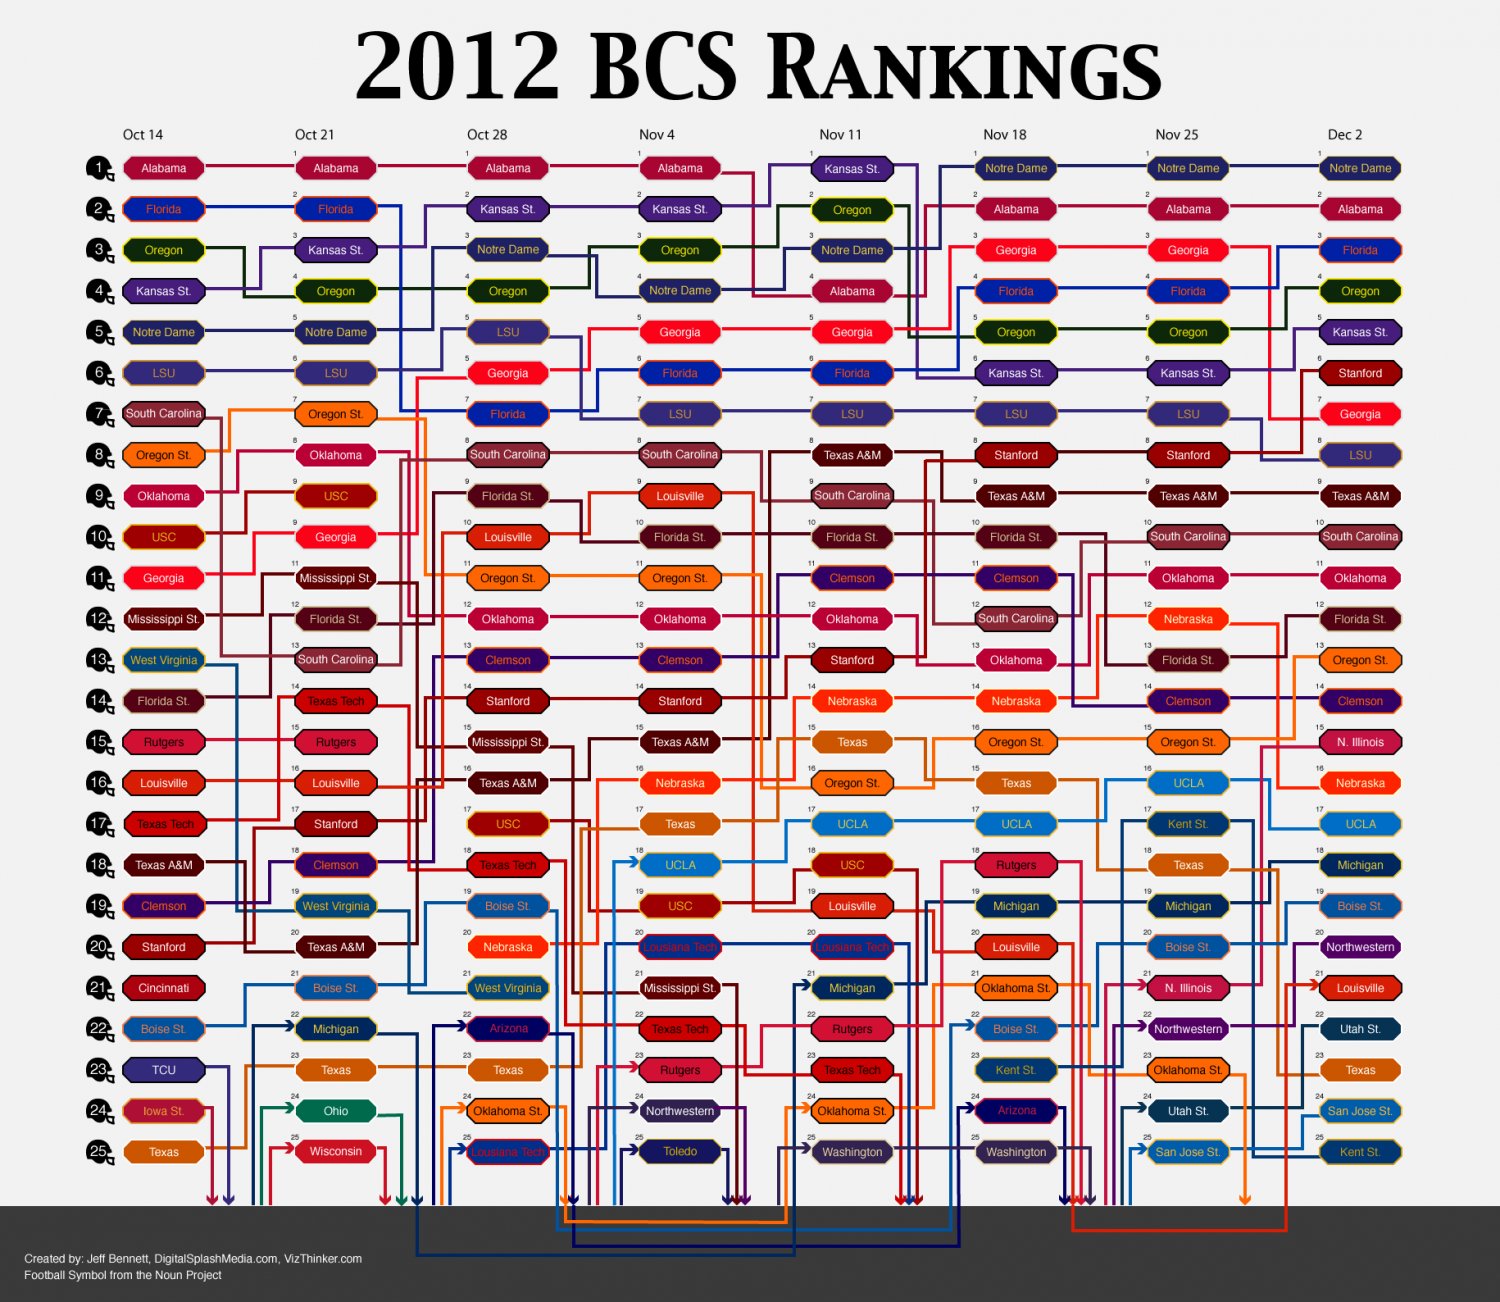 2012 BCS College Football Rankings Infographic